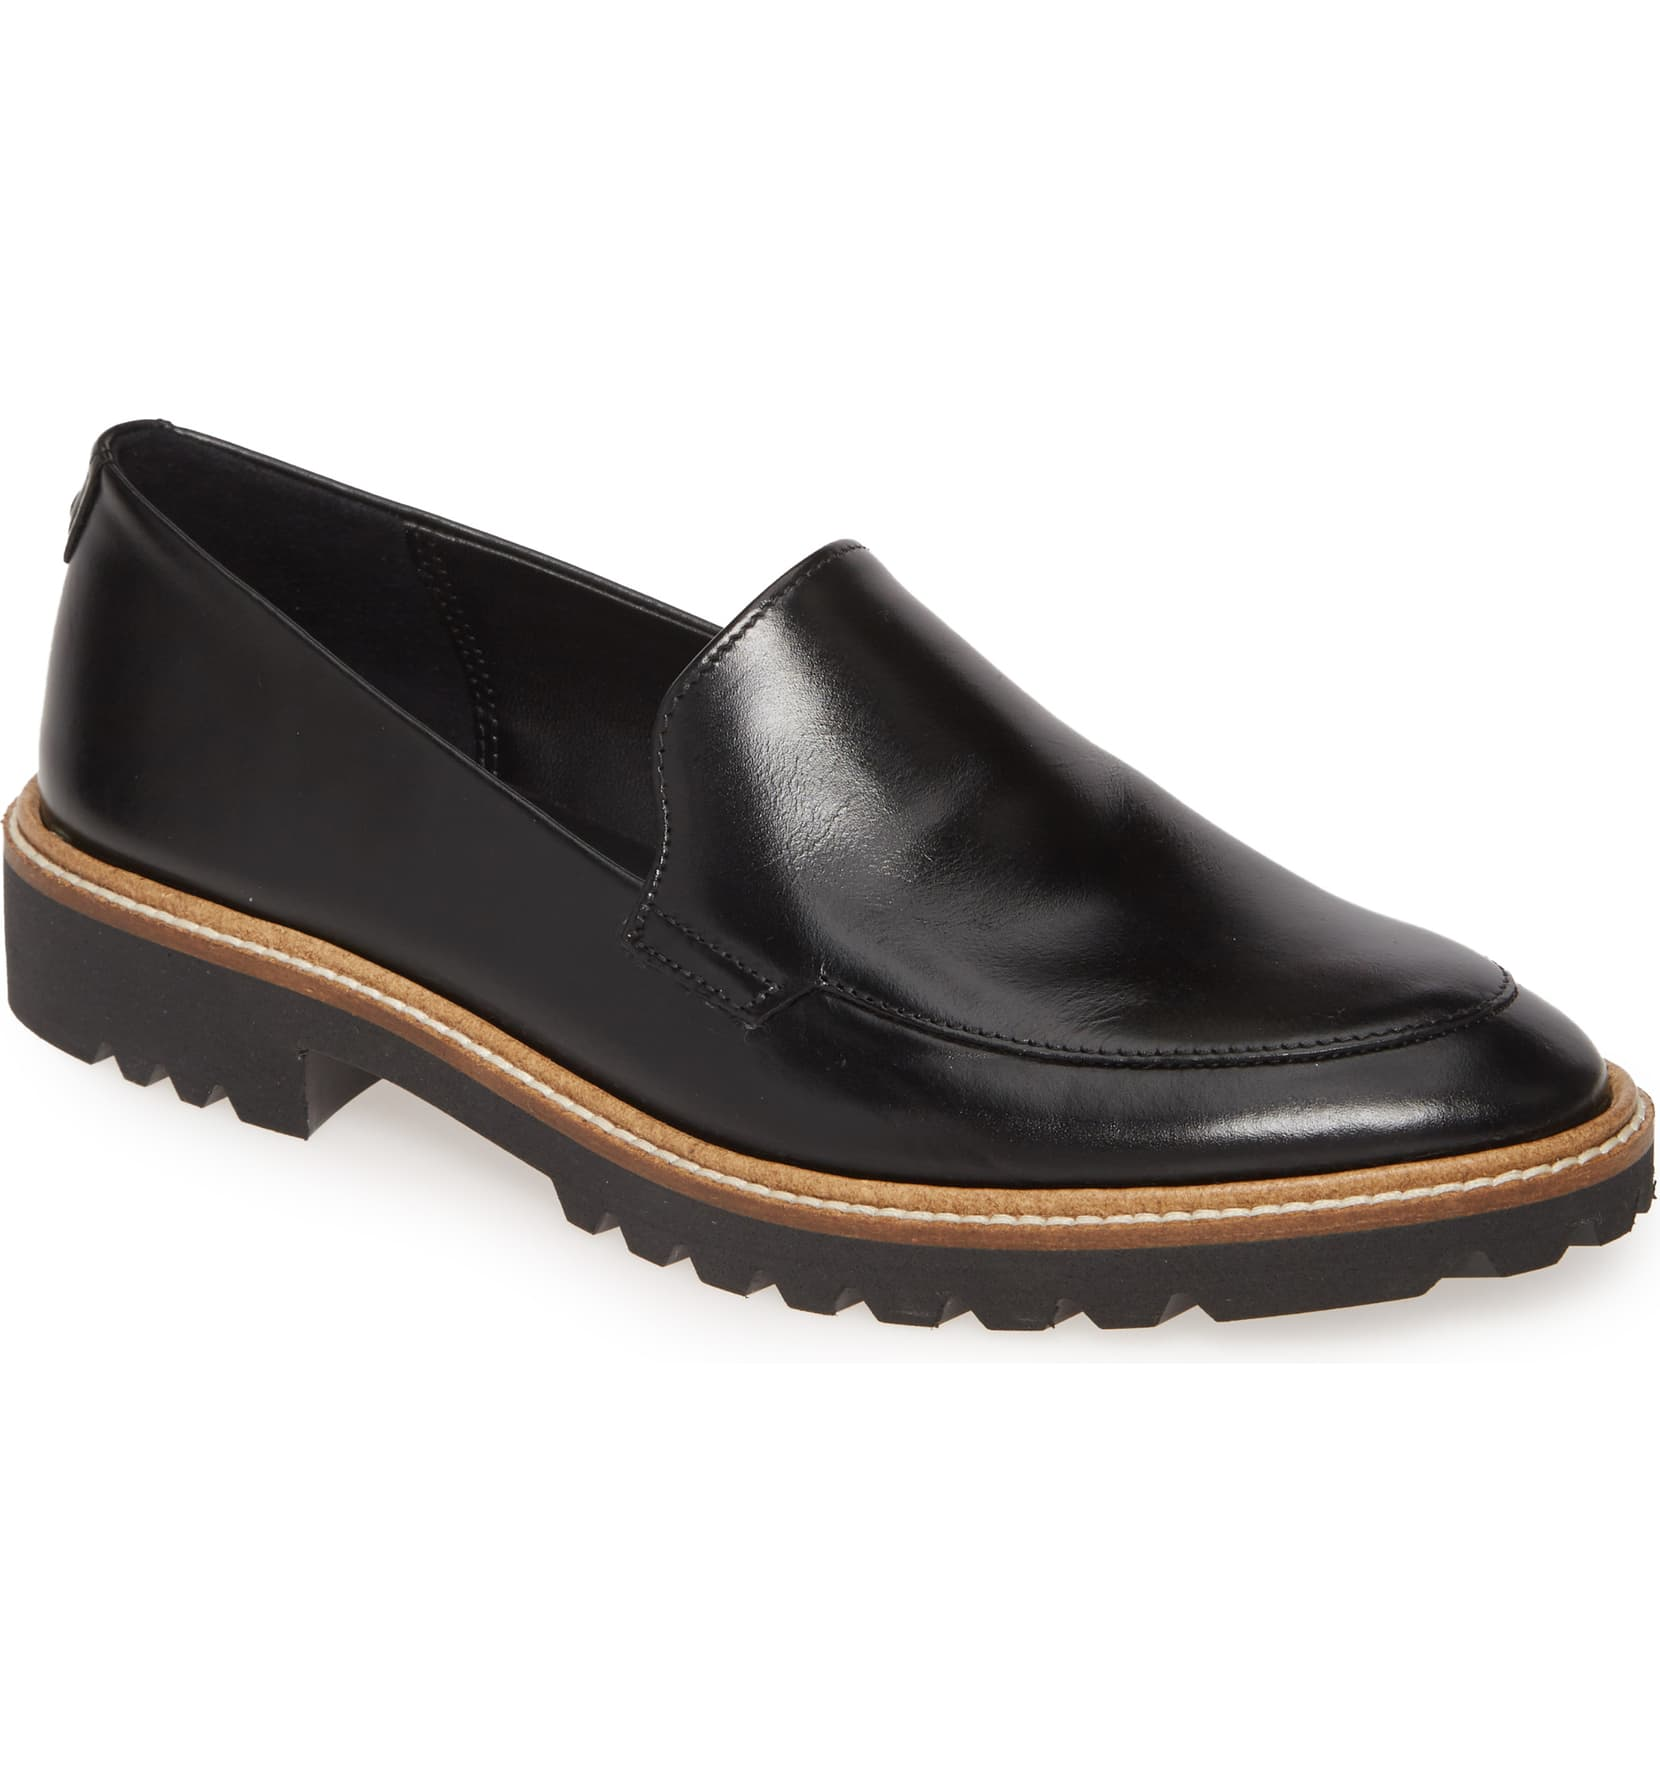 Incise Tailored Loafer ECCO